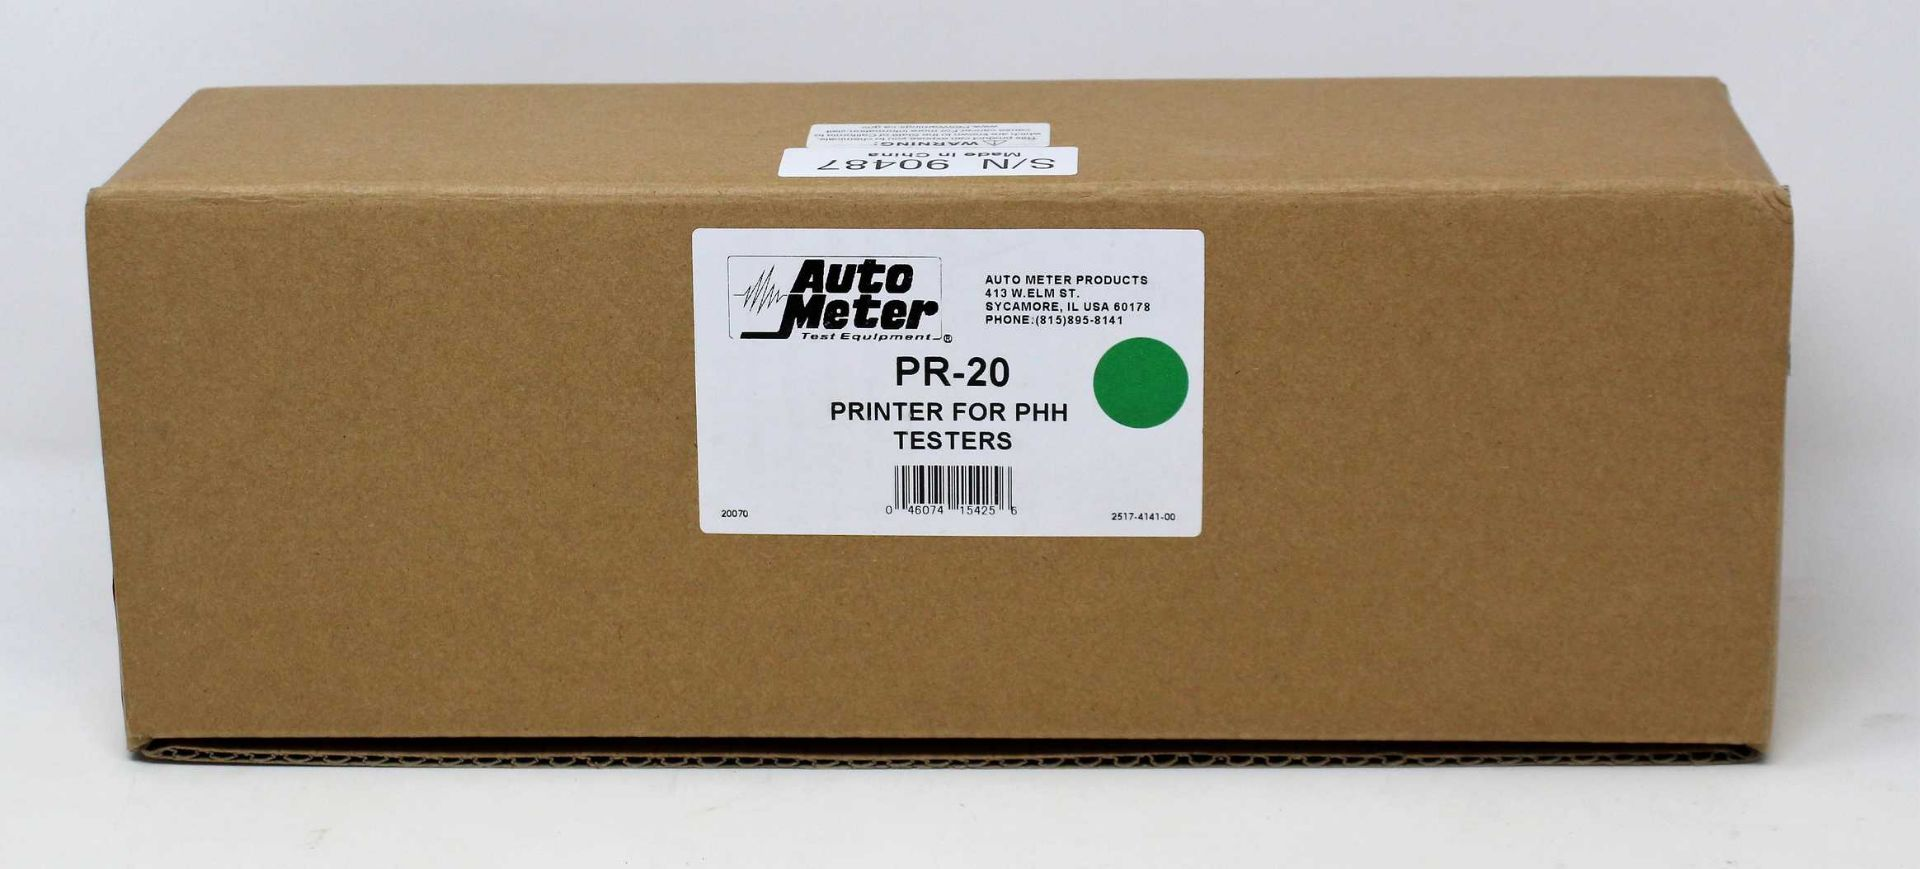 A boxed as new AutoMeter PR-20 Add-On Thermal Printer For PHH Testers.